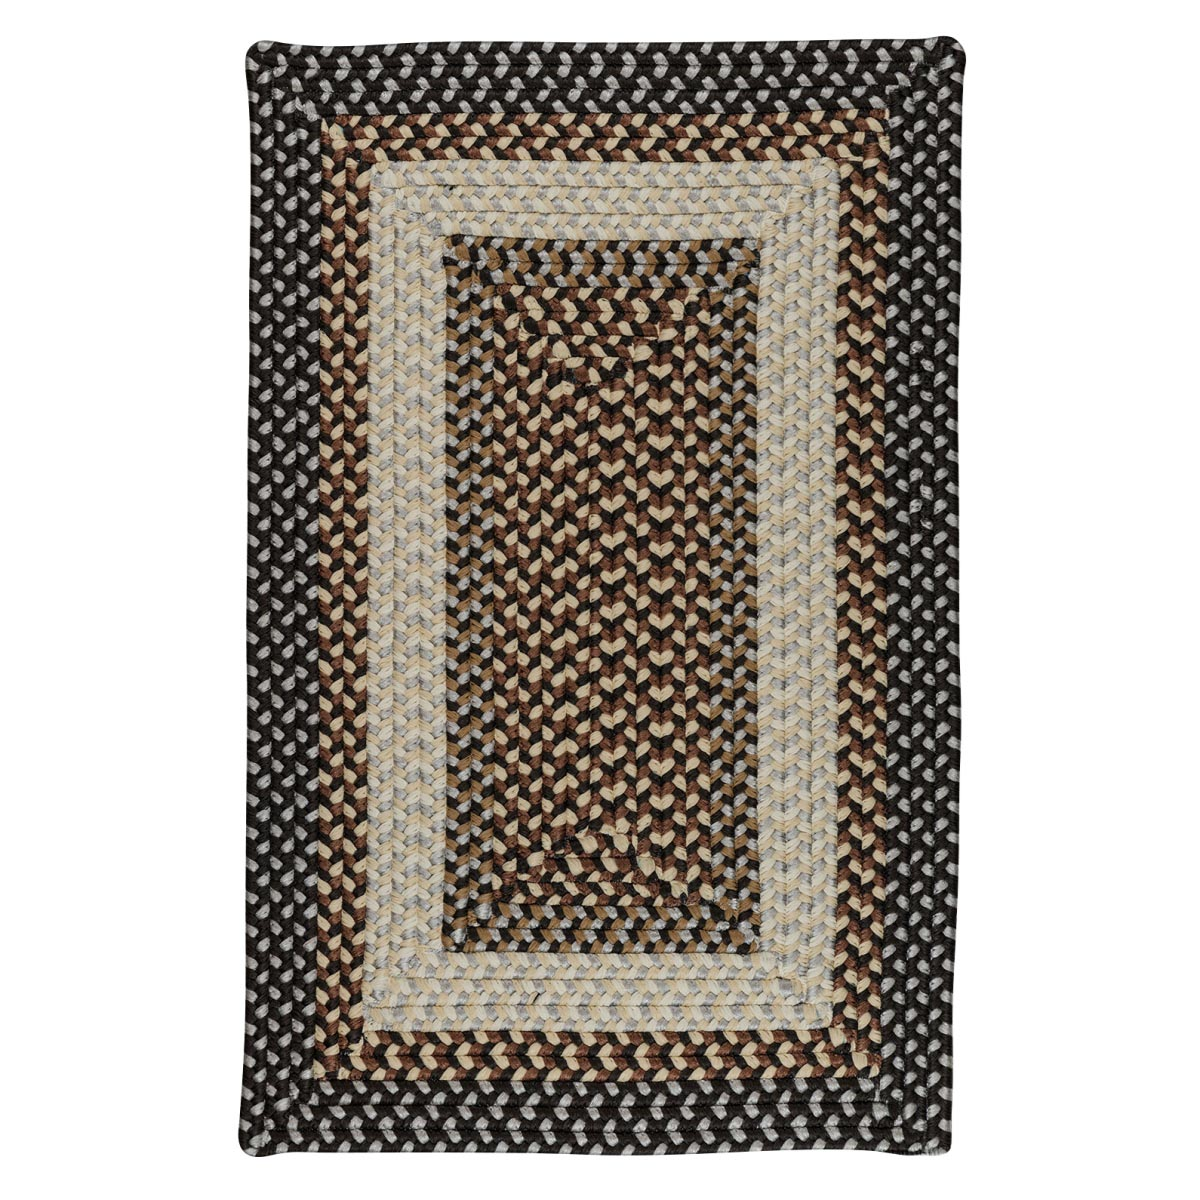 Tiburon Misted Gray Outdoor Braided Rectangular Rugs